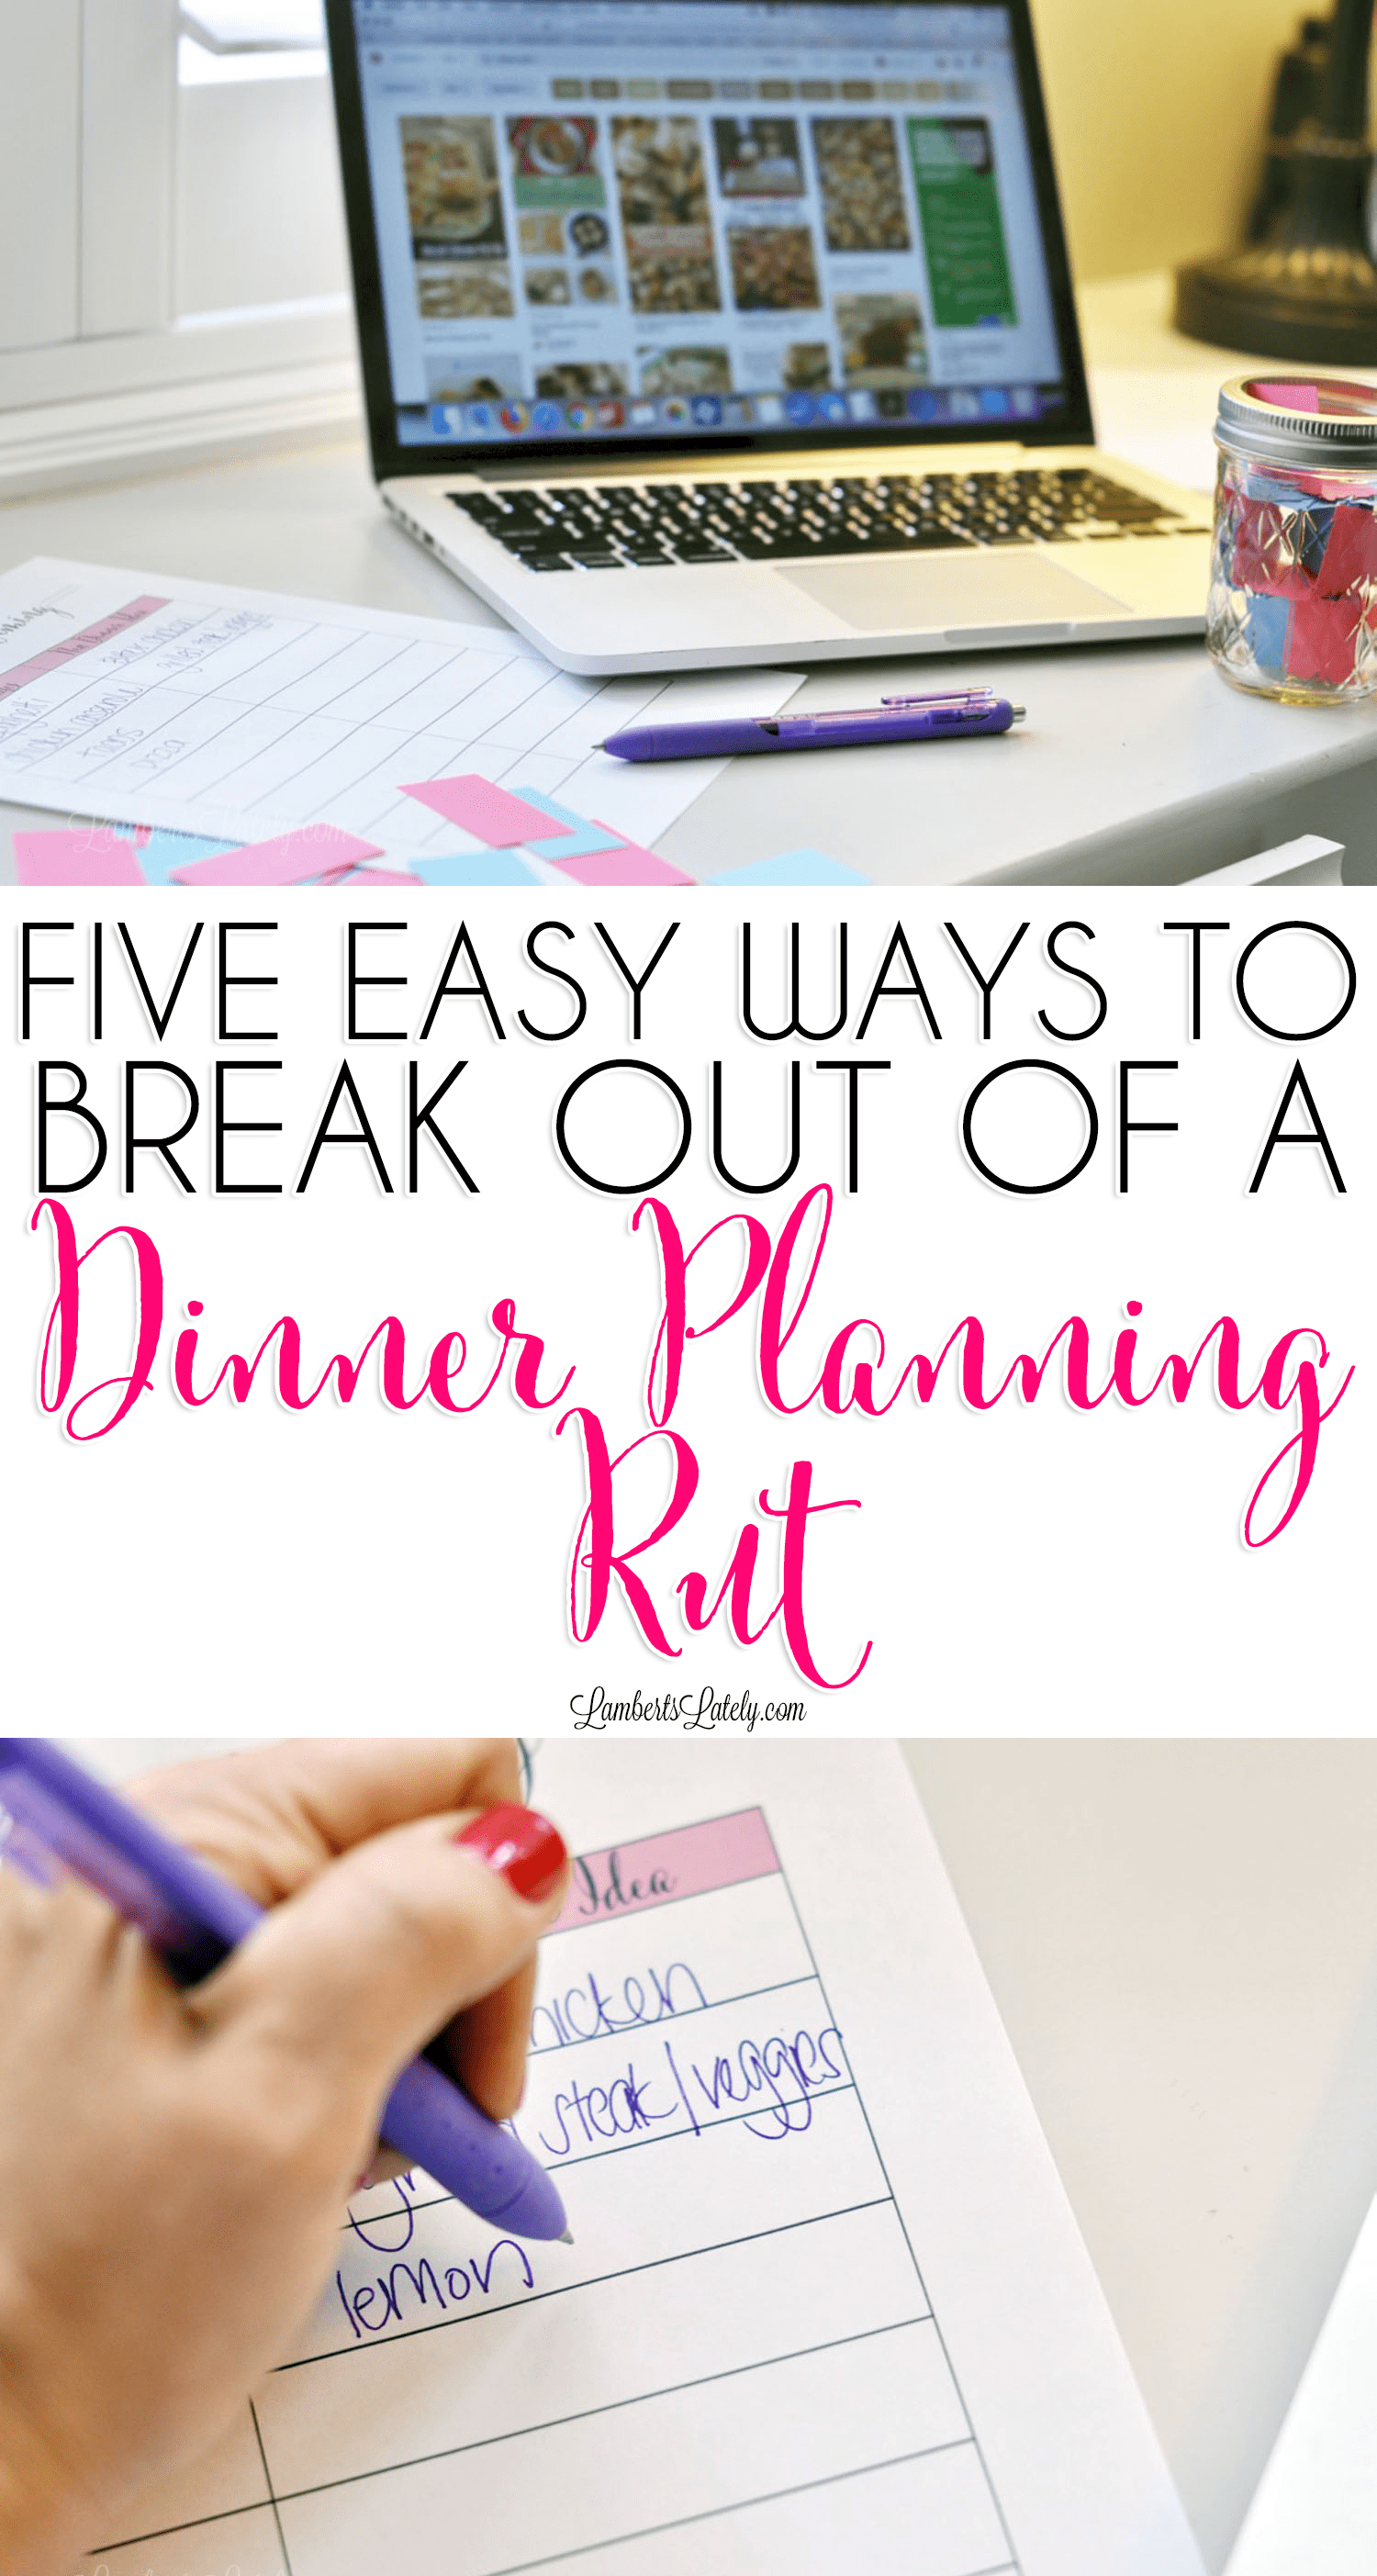 Grab a few ideas for how to break out of a dinner planning rut, including printables to organize meals and tips & tricks for meal planning for busy families!